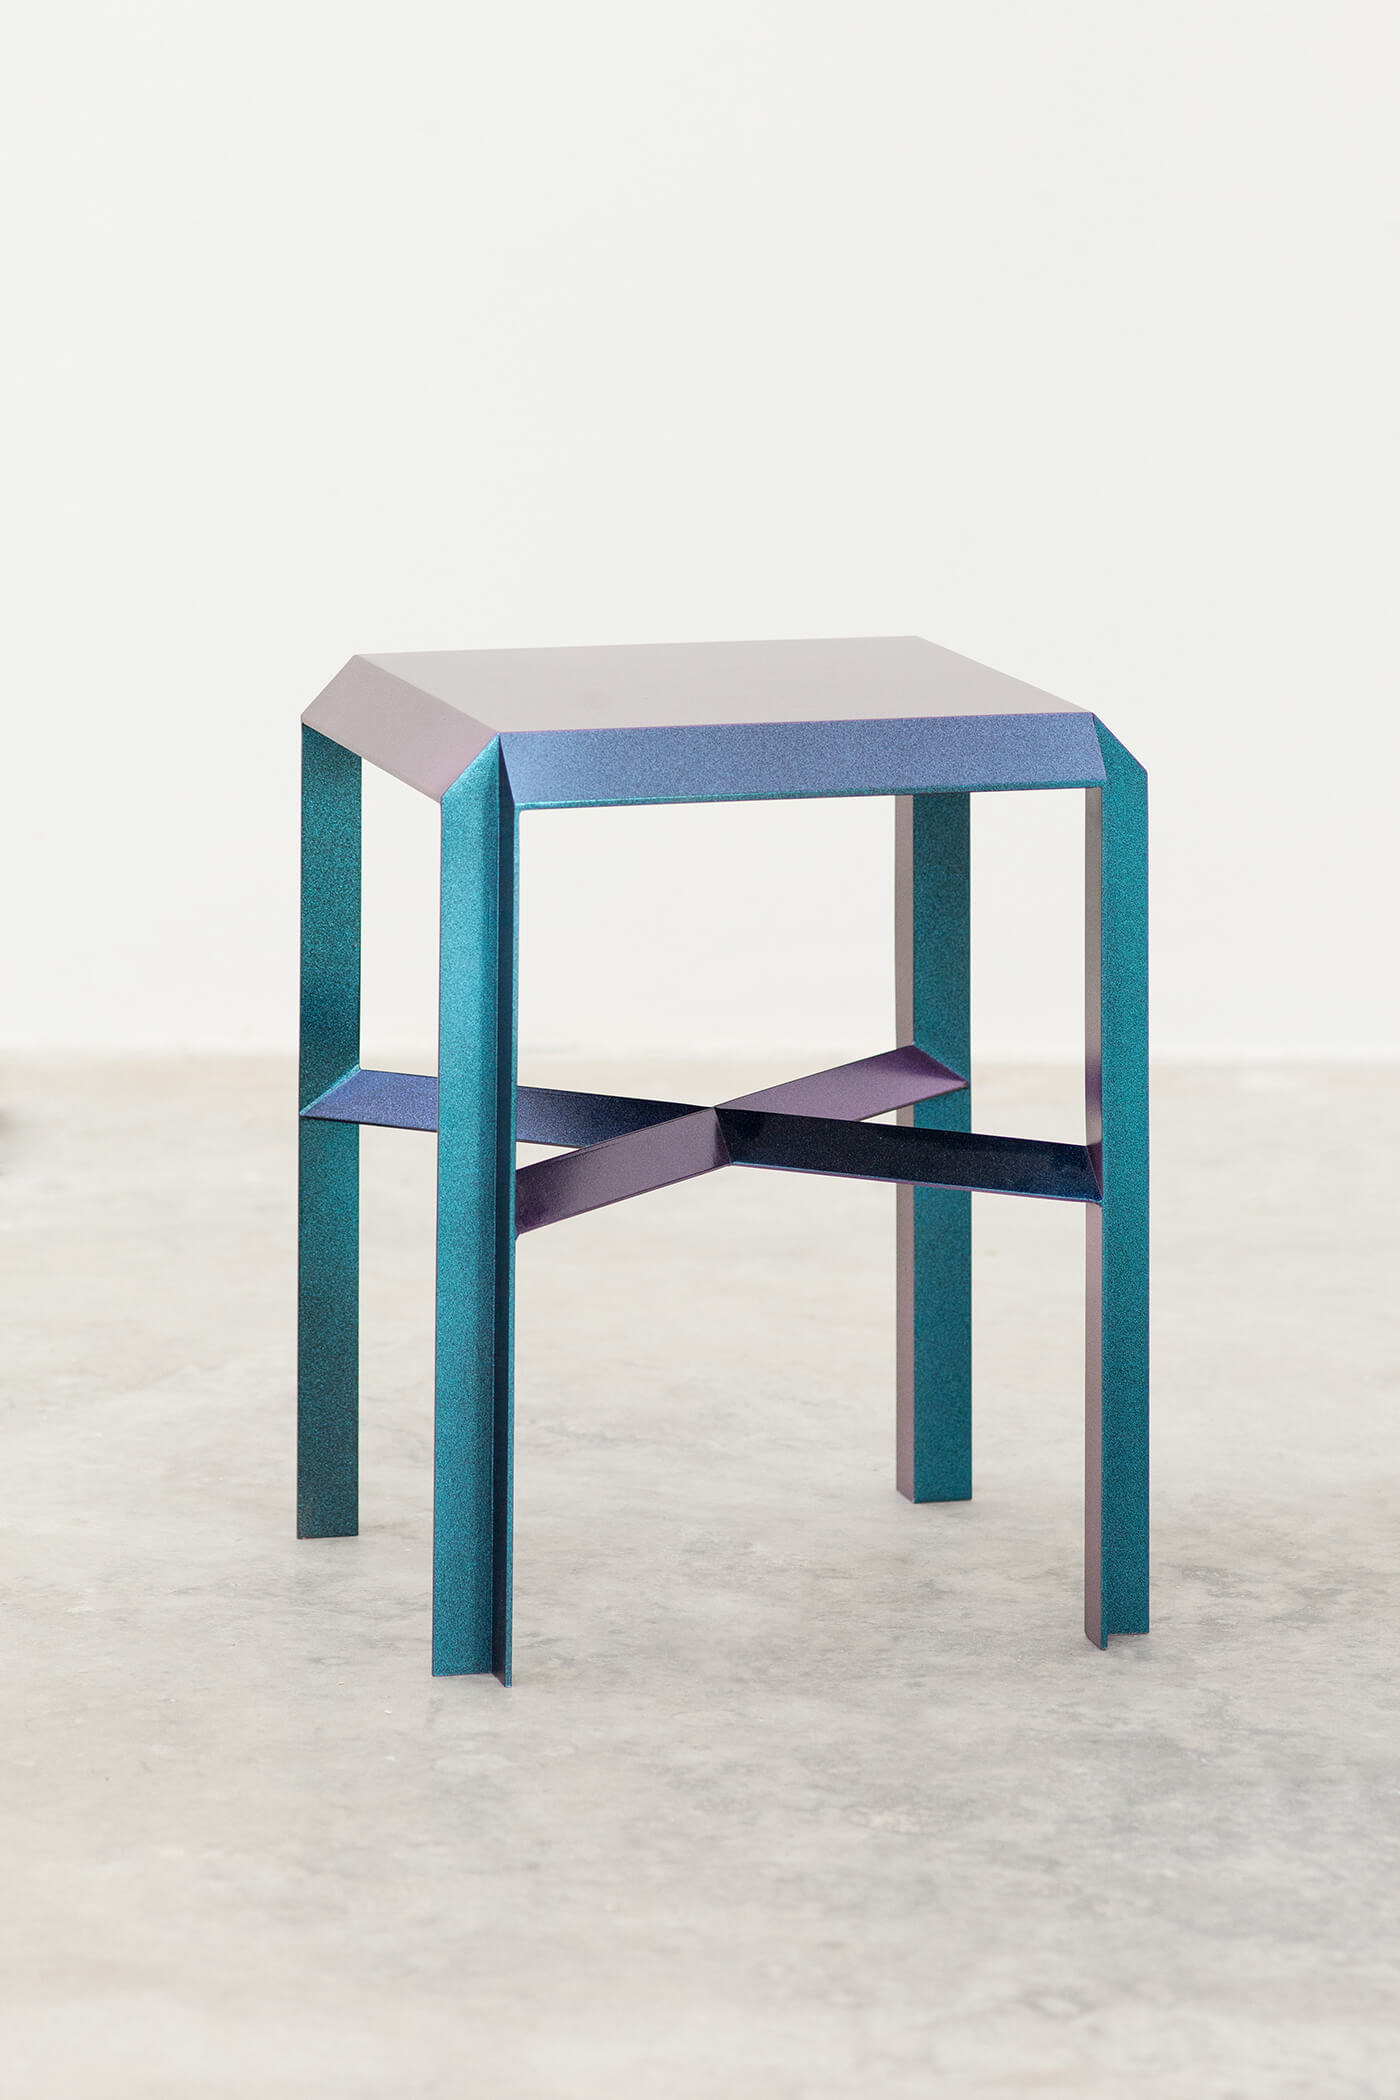 Marco Campardo Elle Collection Brass Stool Wallpaper Design Awards winner for Seeds London Gallery